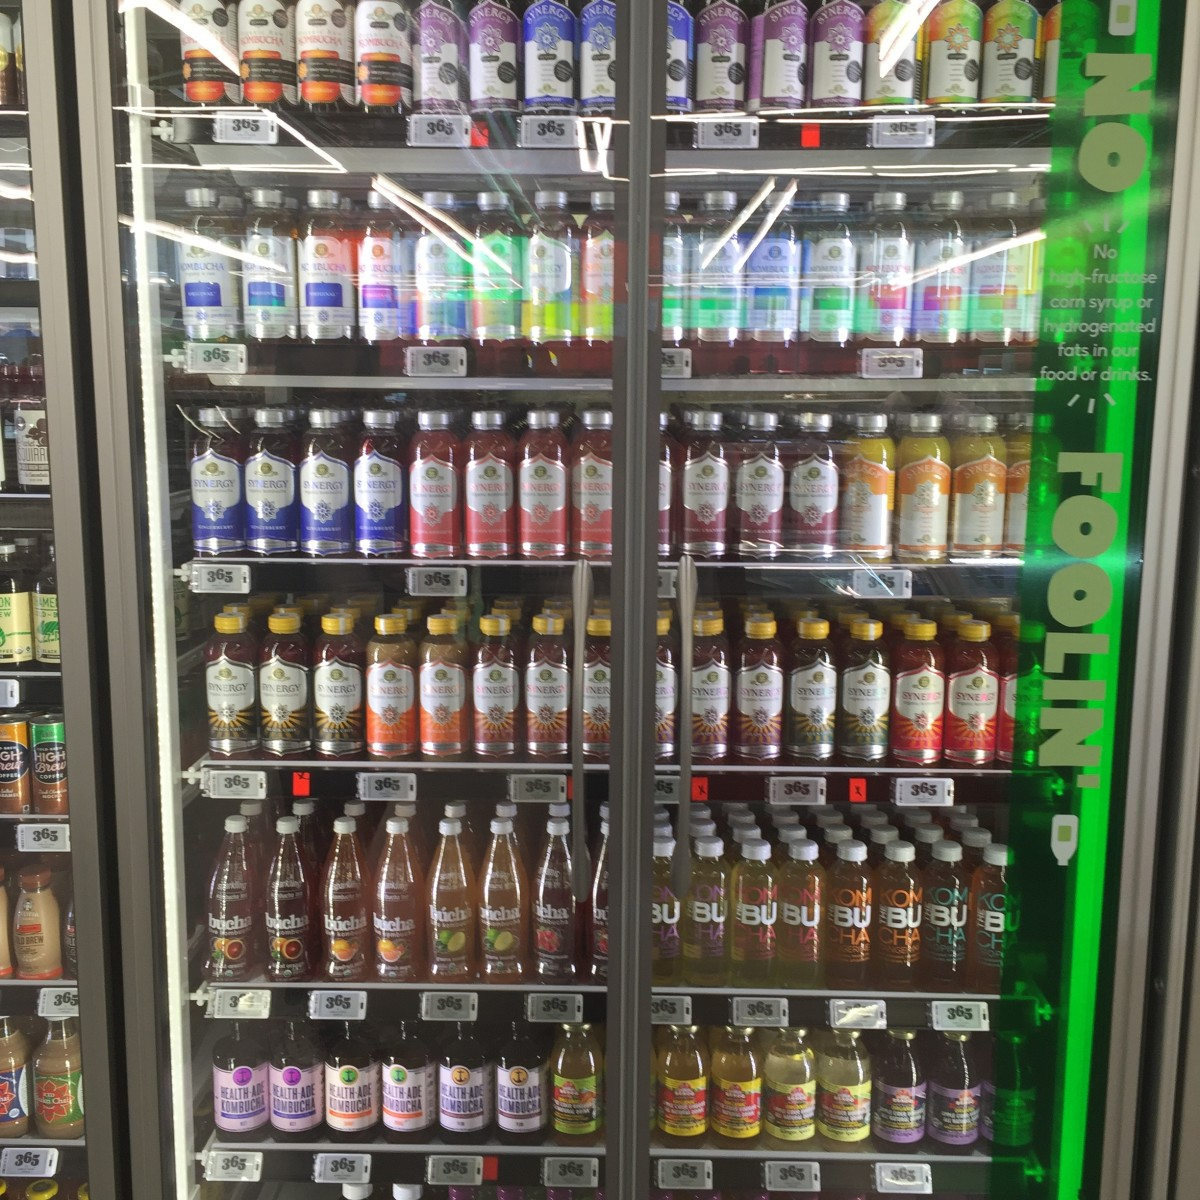 Of course there's a wall of kombucha.